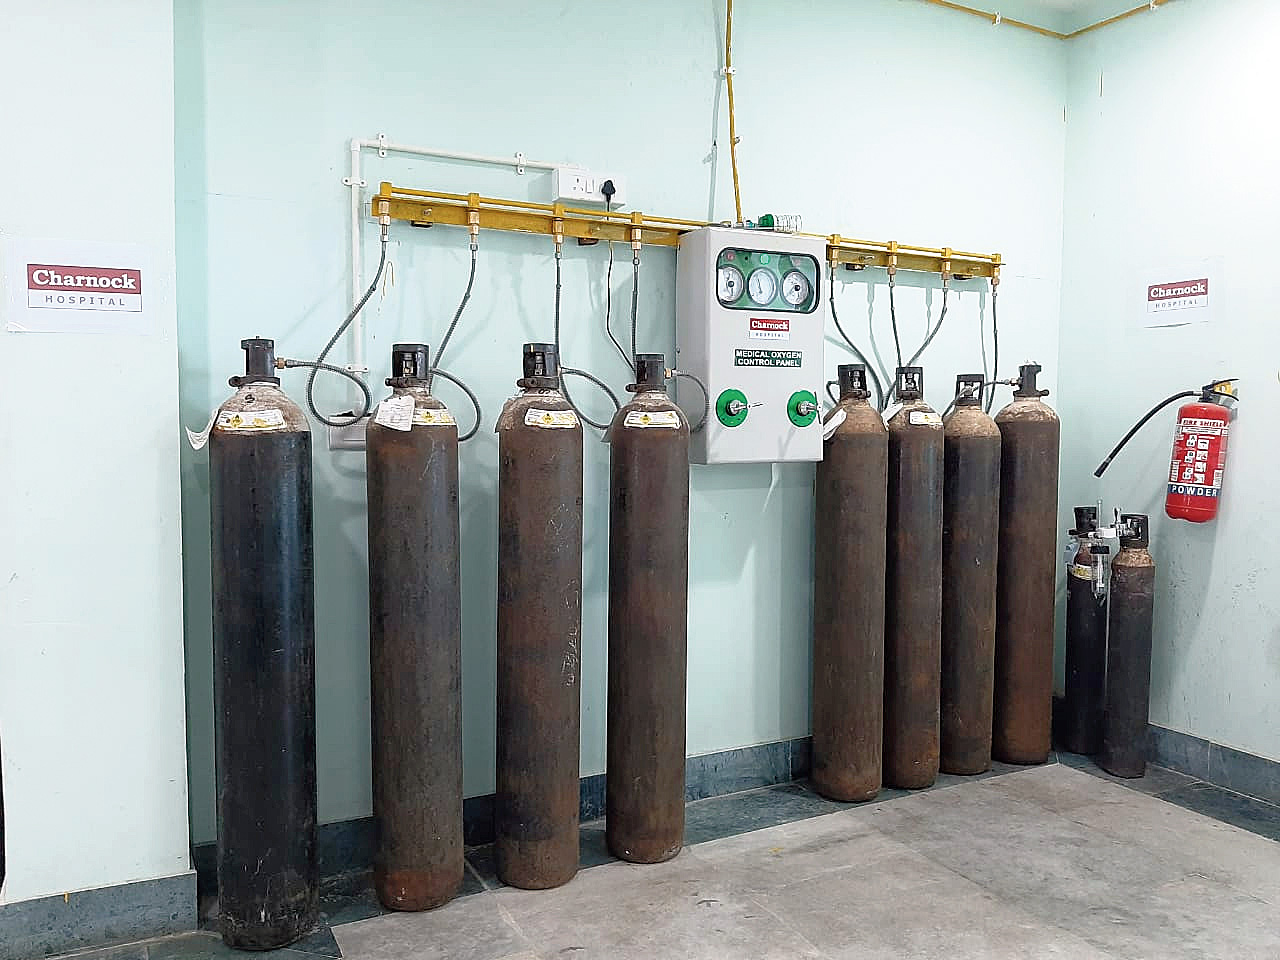 Oxygen cylinders at the facility